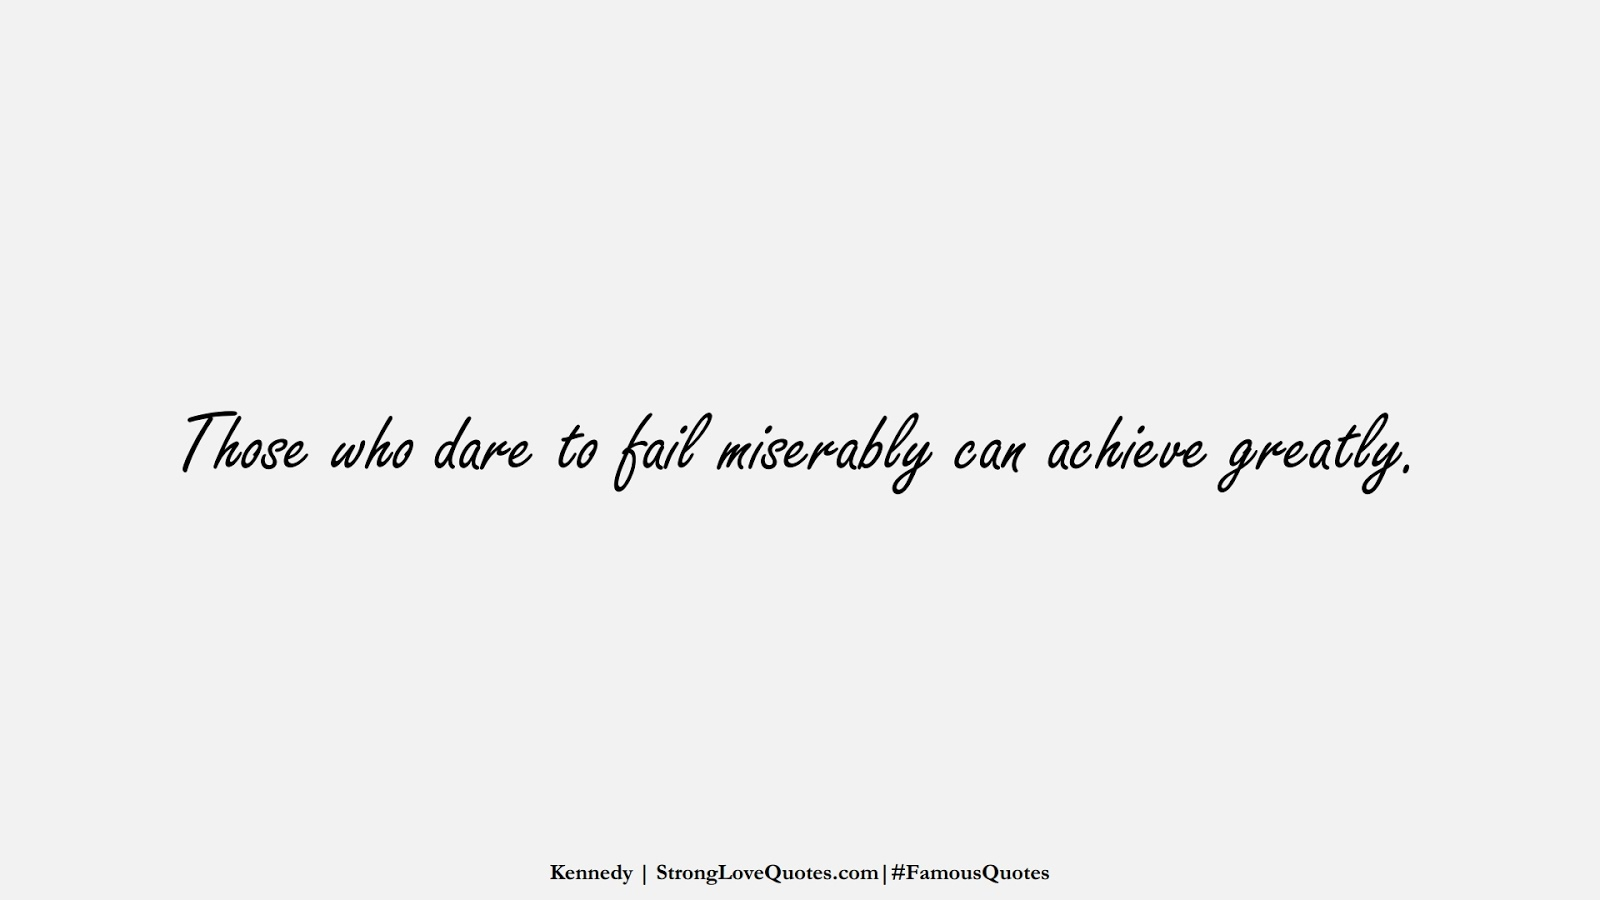 Those who dare to fail miserably can achieve greatly. (Kennedy);  #FamousQuotes